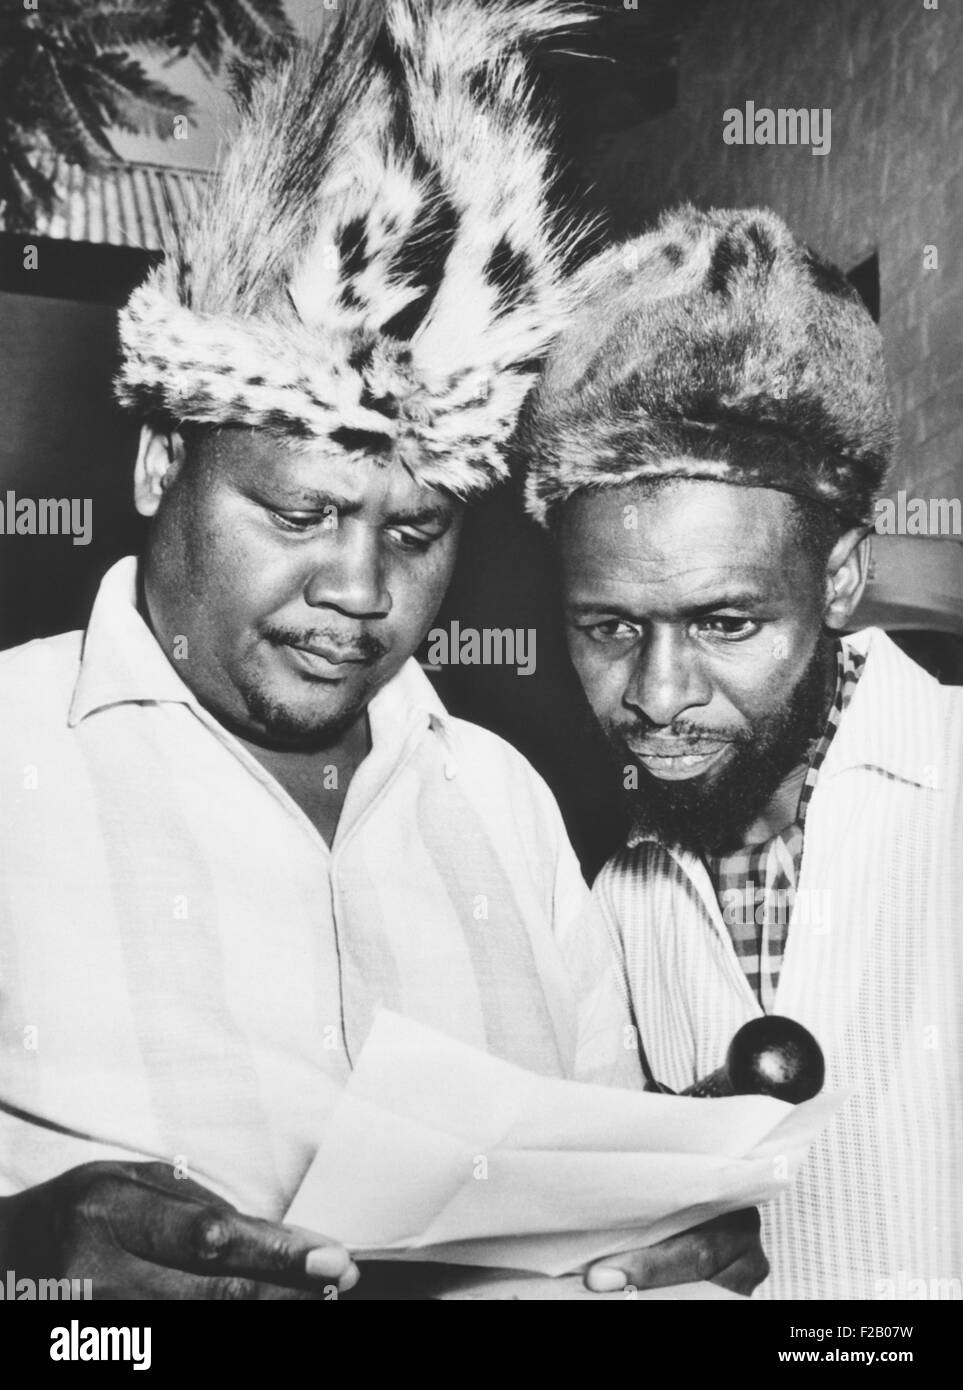 Joshua Nkomo reading a Rhodesian criminal charge against him in April 1963. In 1962 Nkomo founded the Zimbabwe African - Stock Image